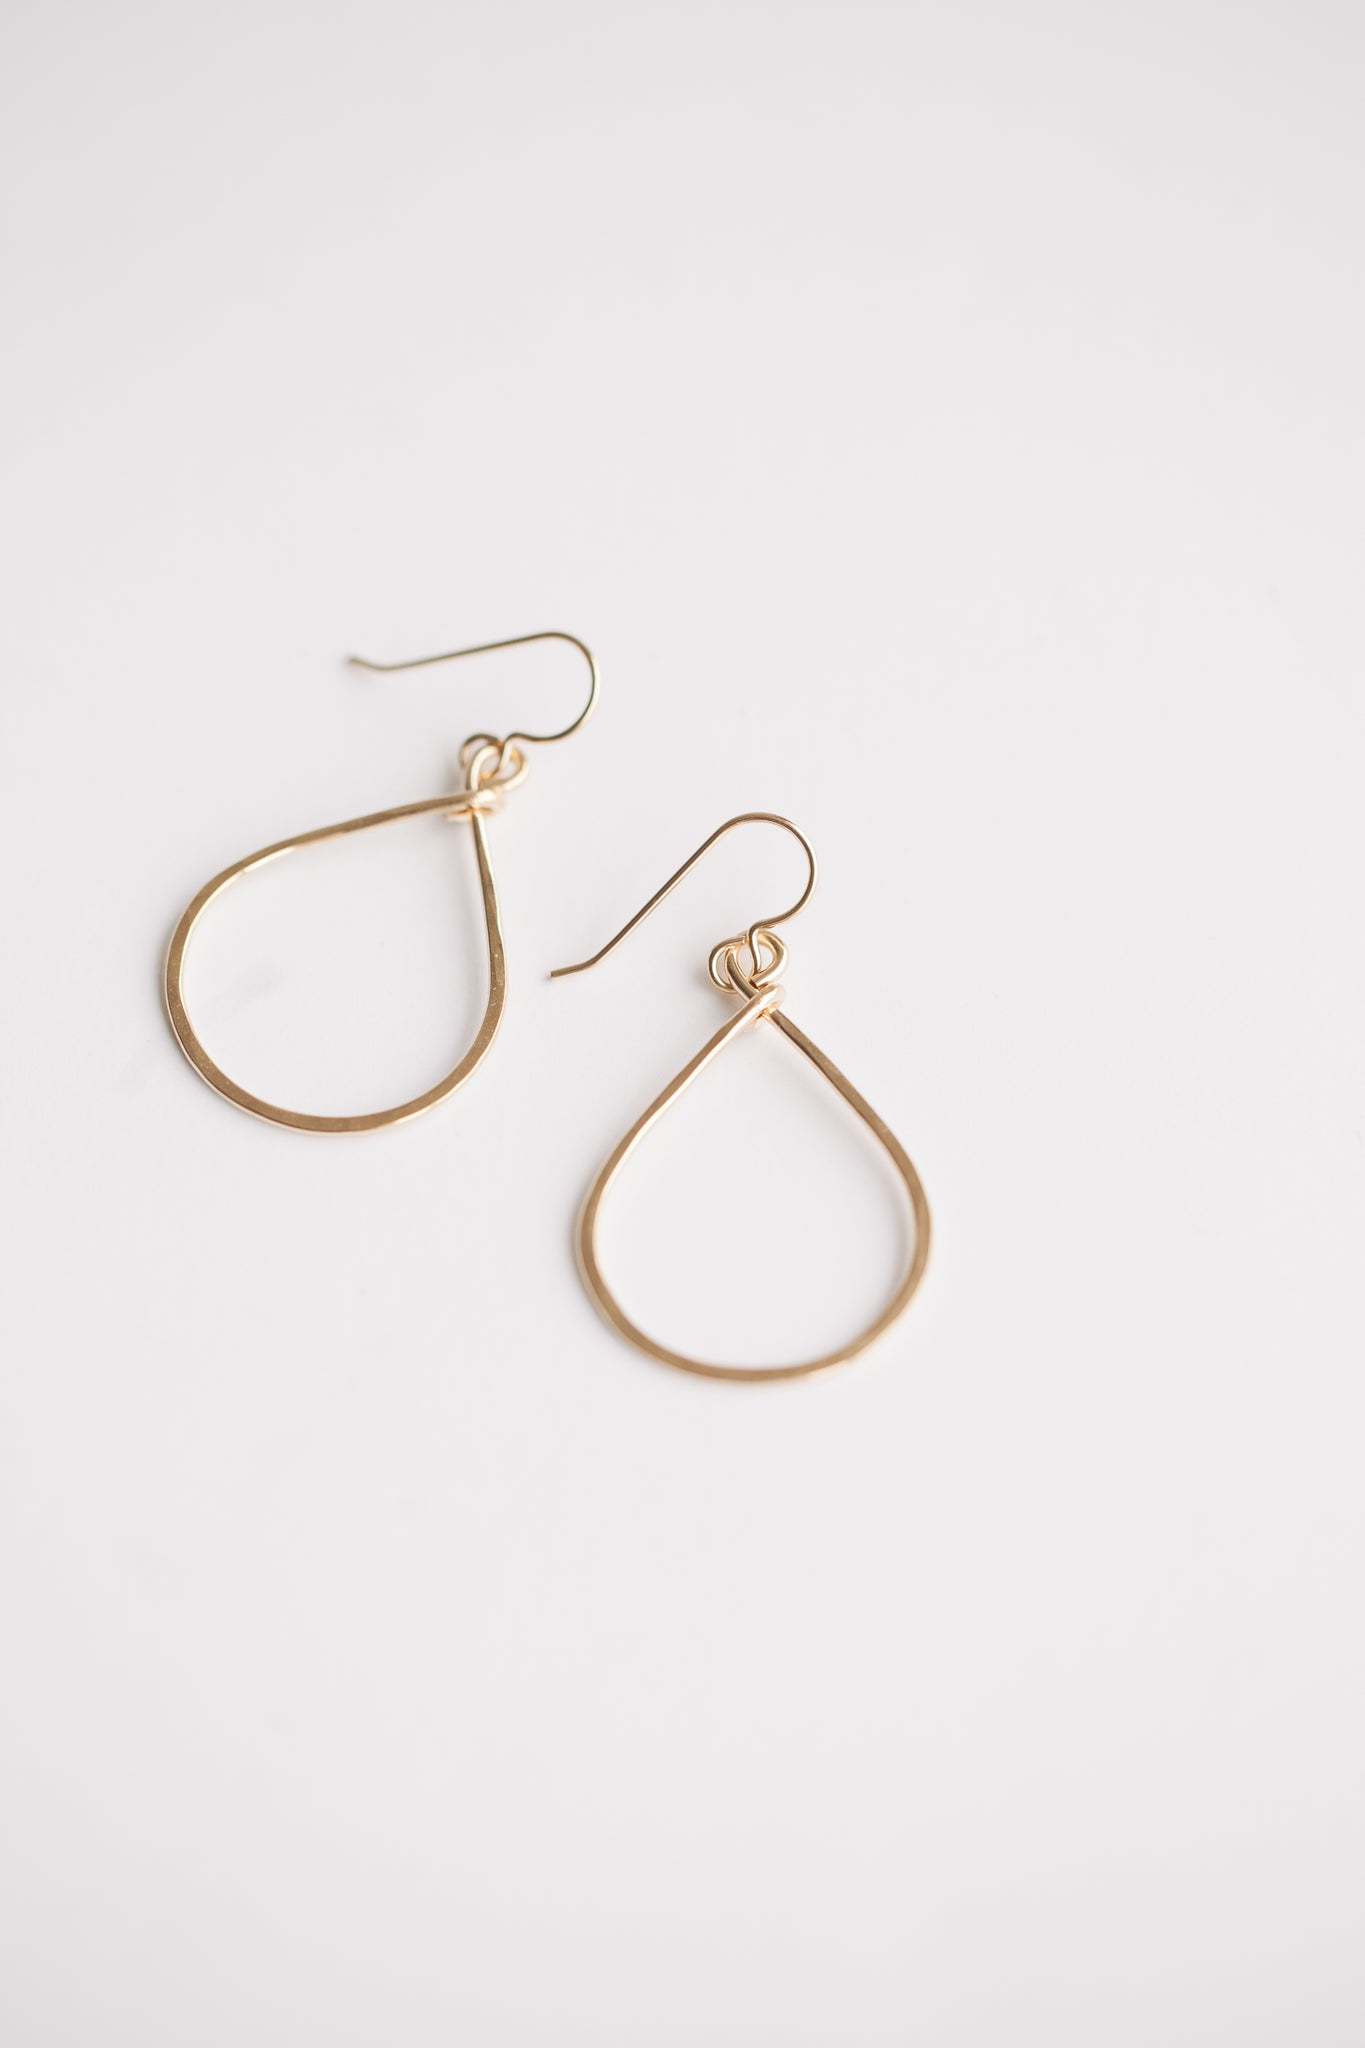 Petite Essential Hoops - Gold Fill